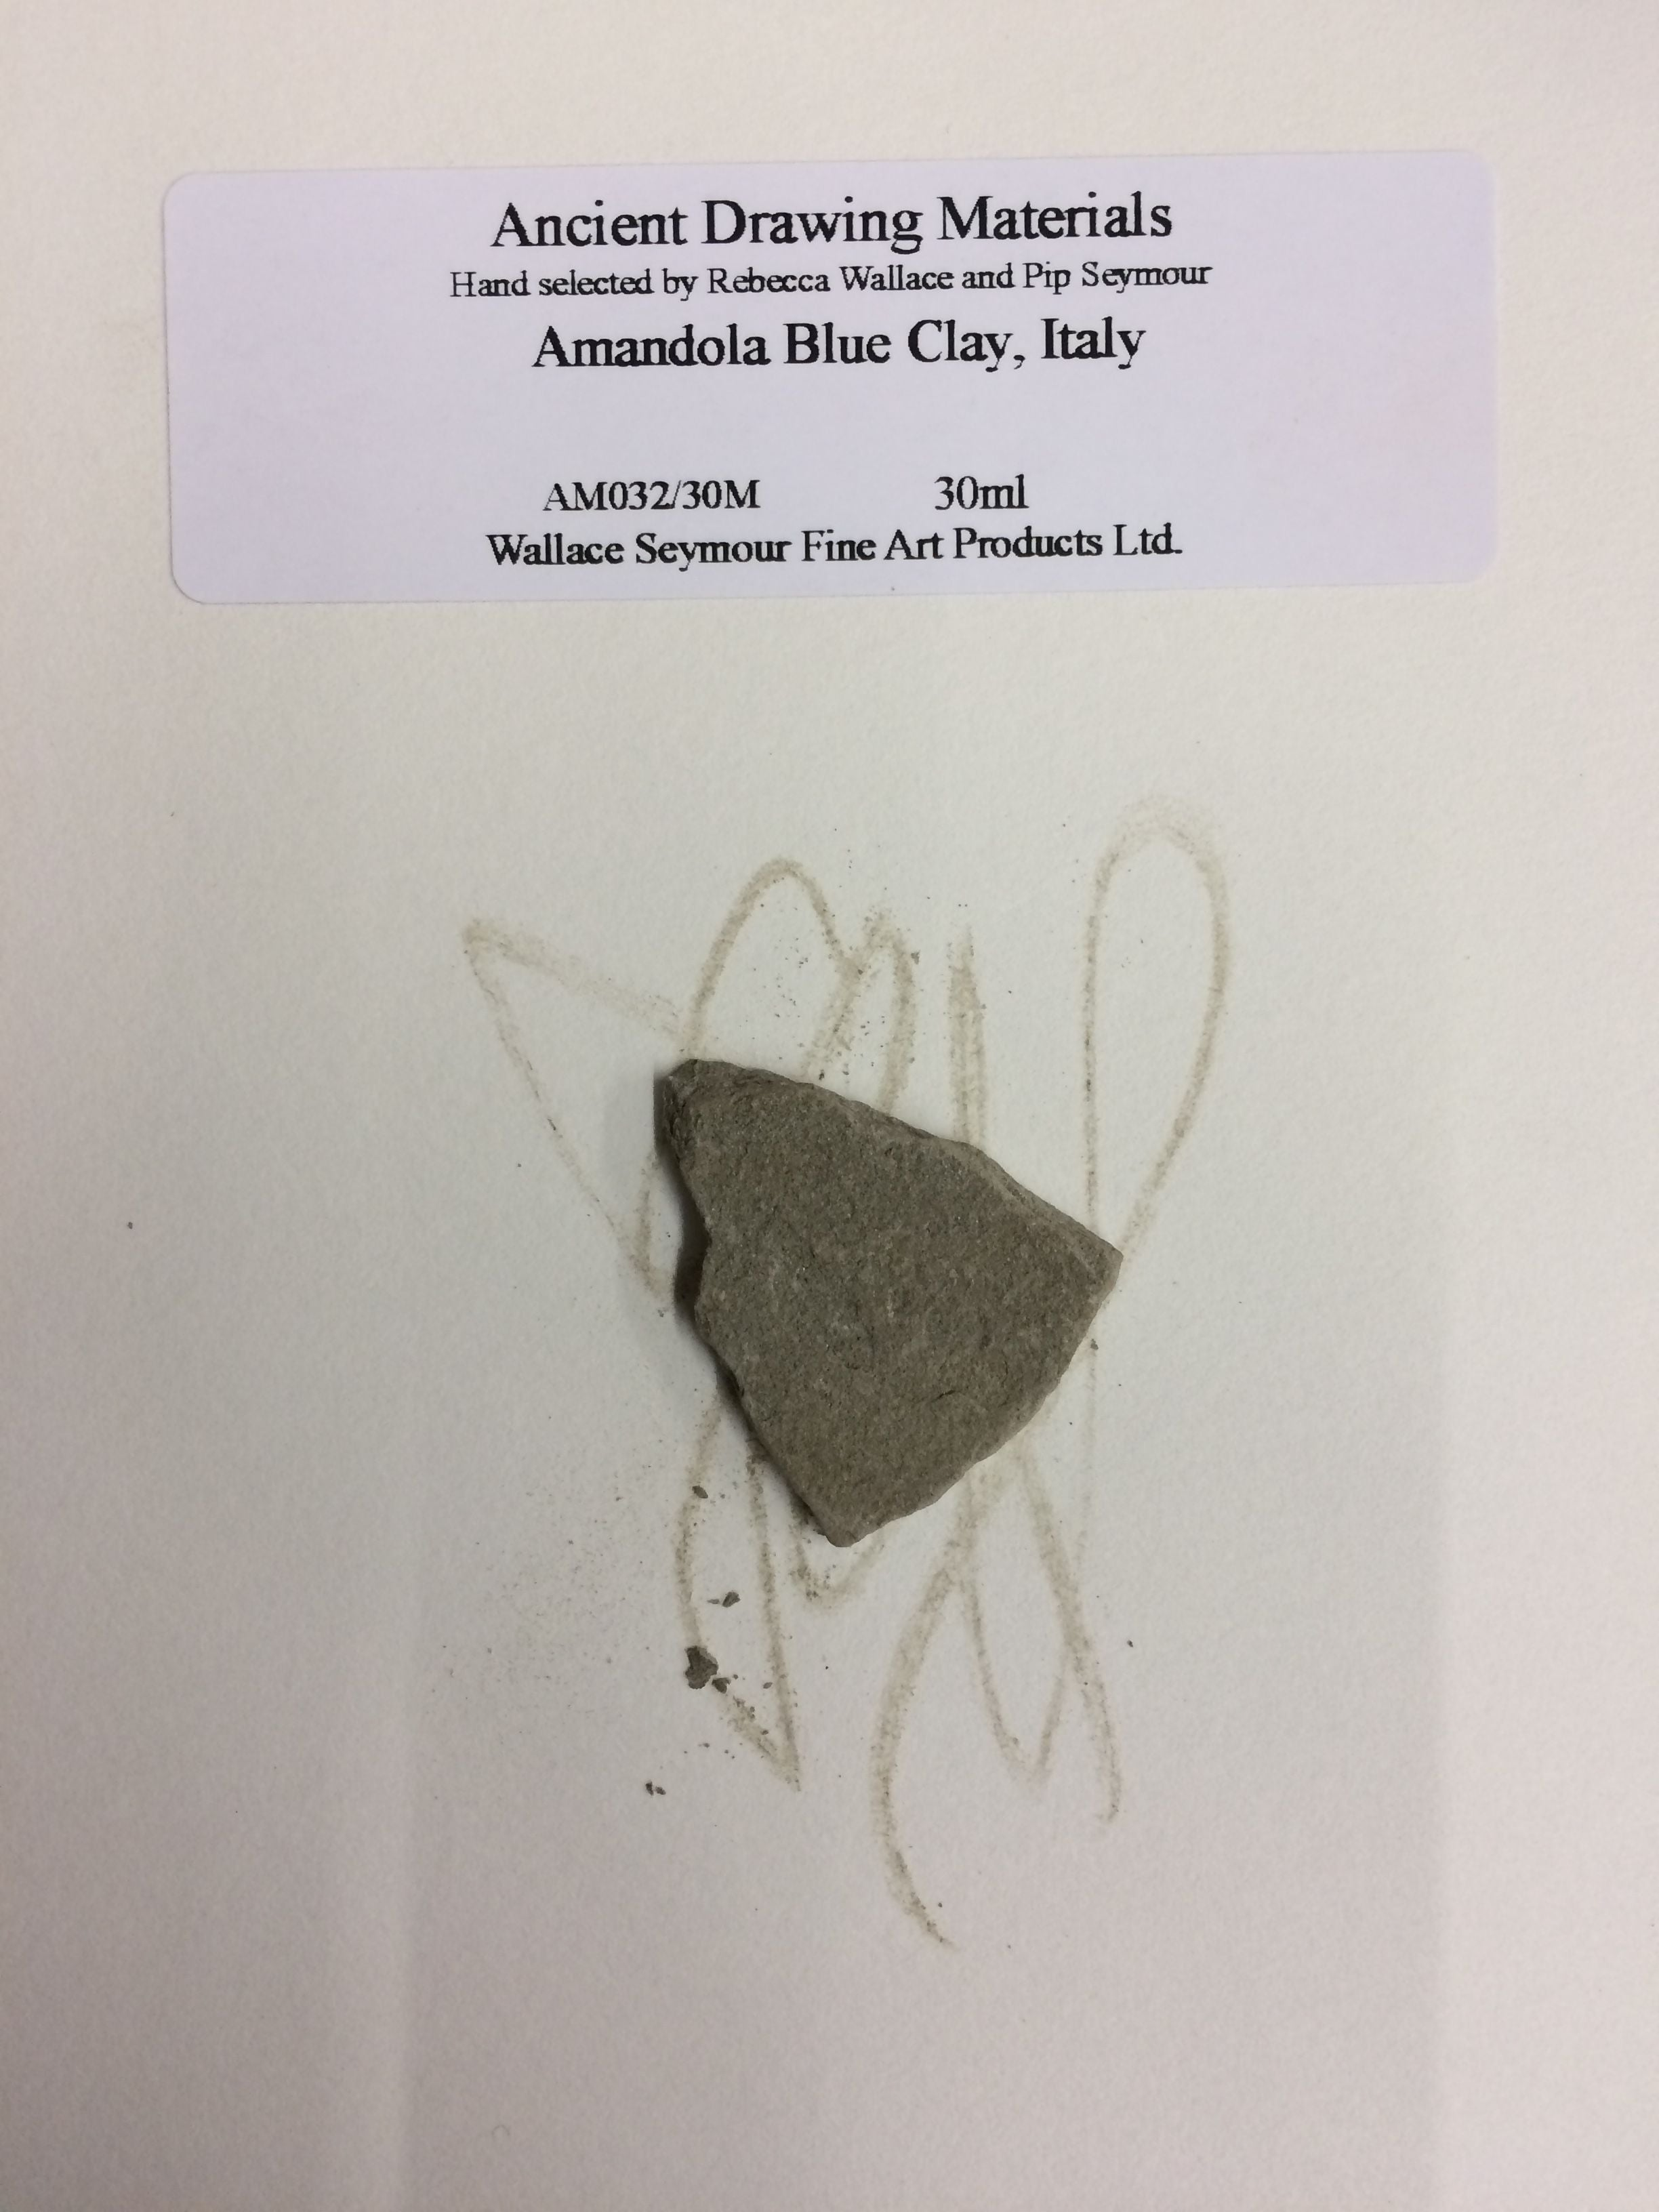 Amandola Blue Clay, Italy Drawing Stone